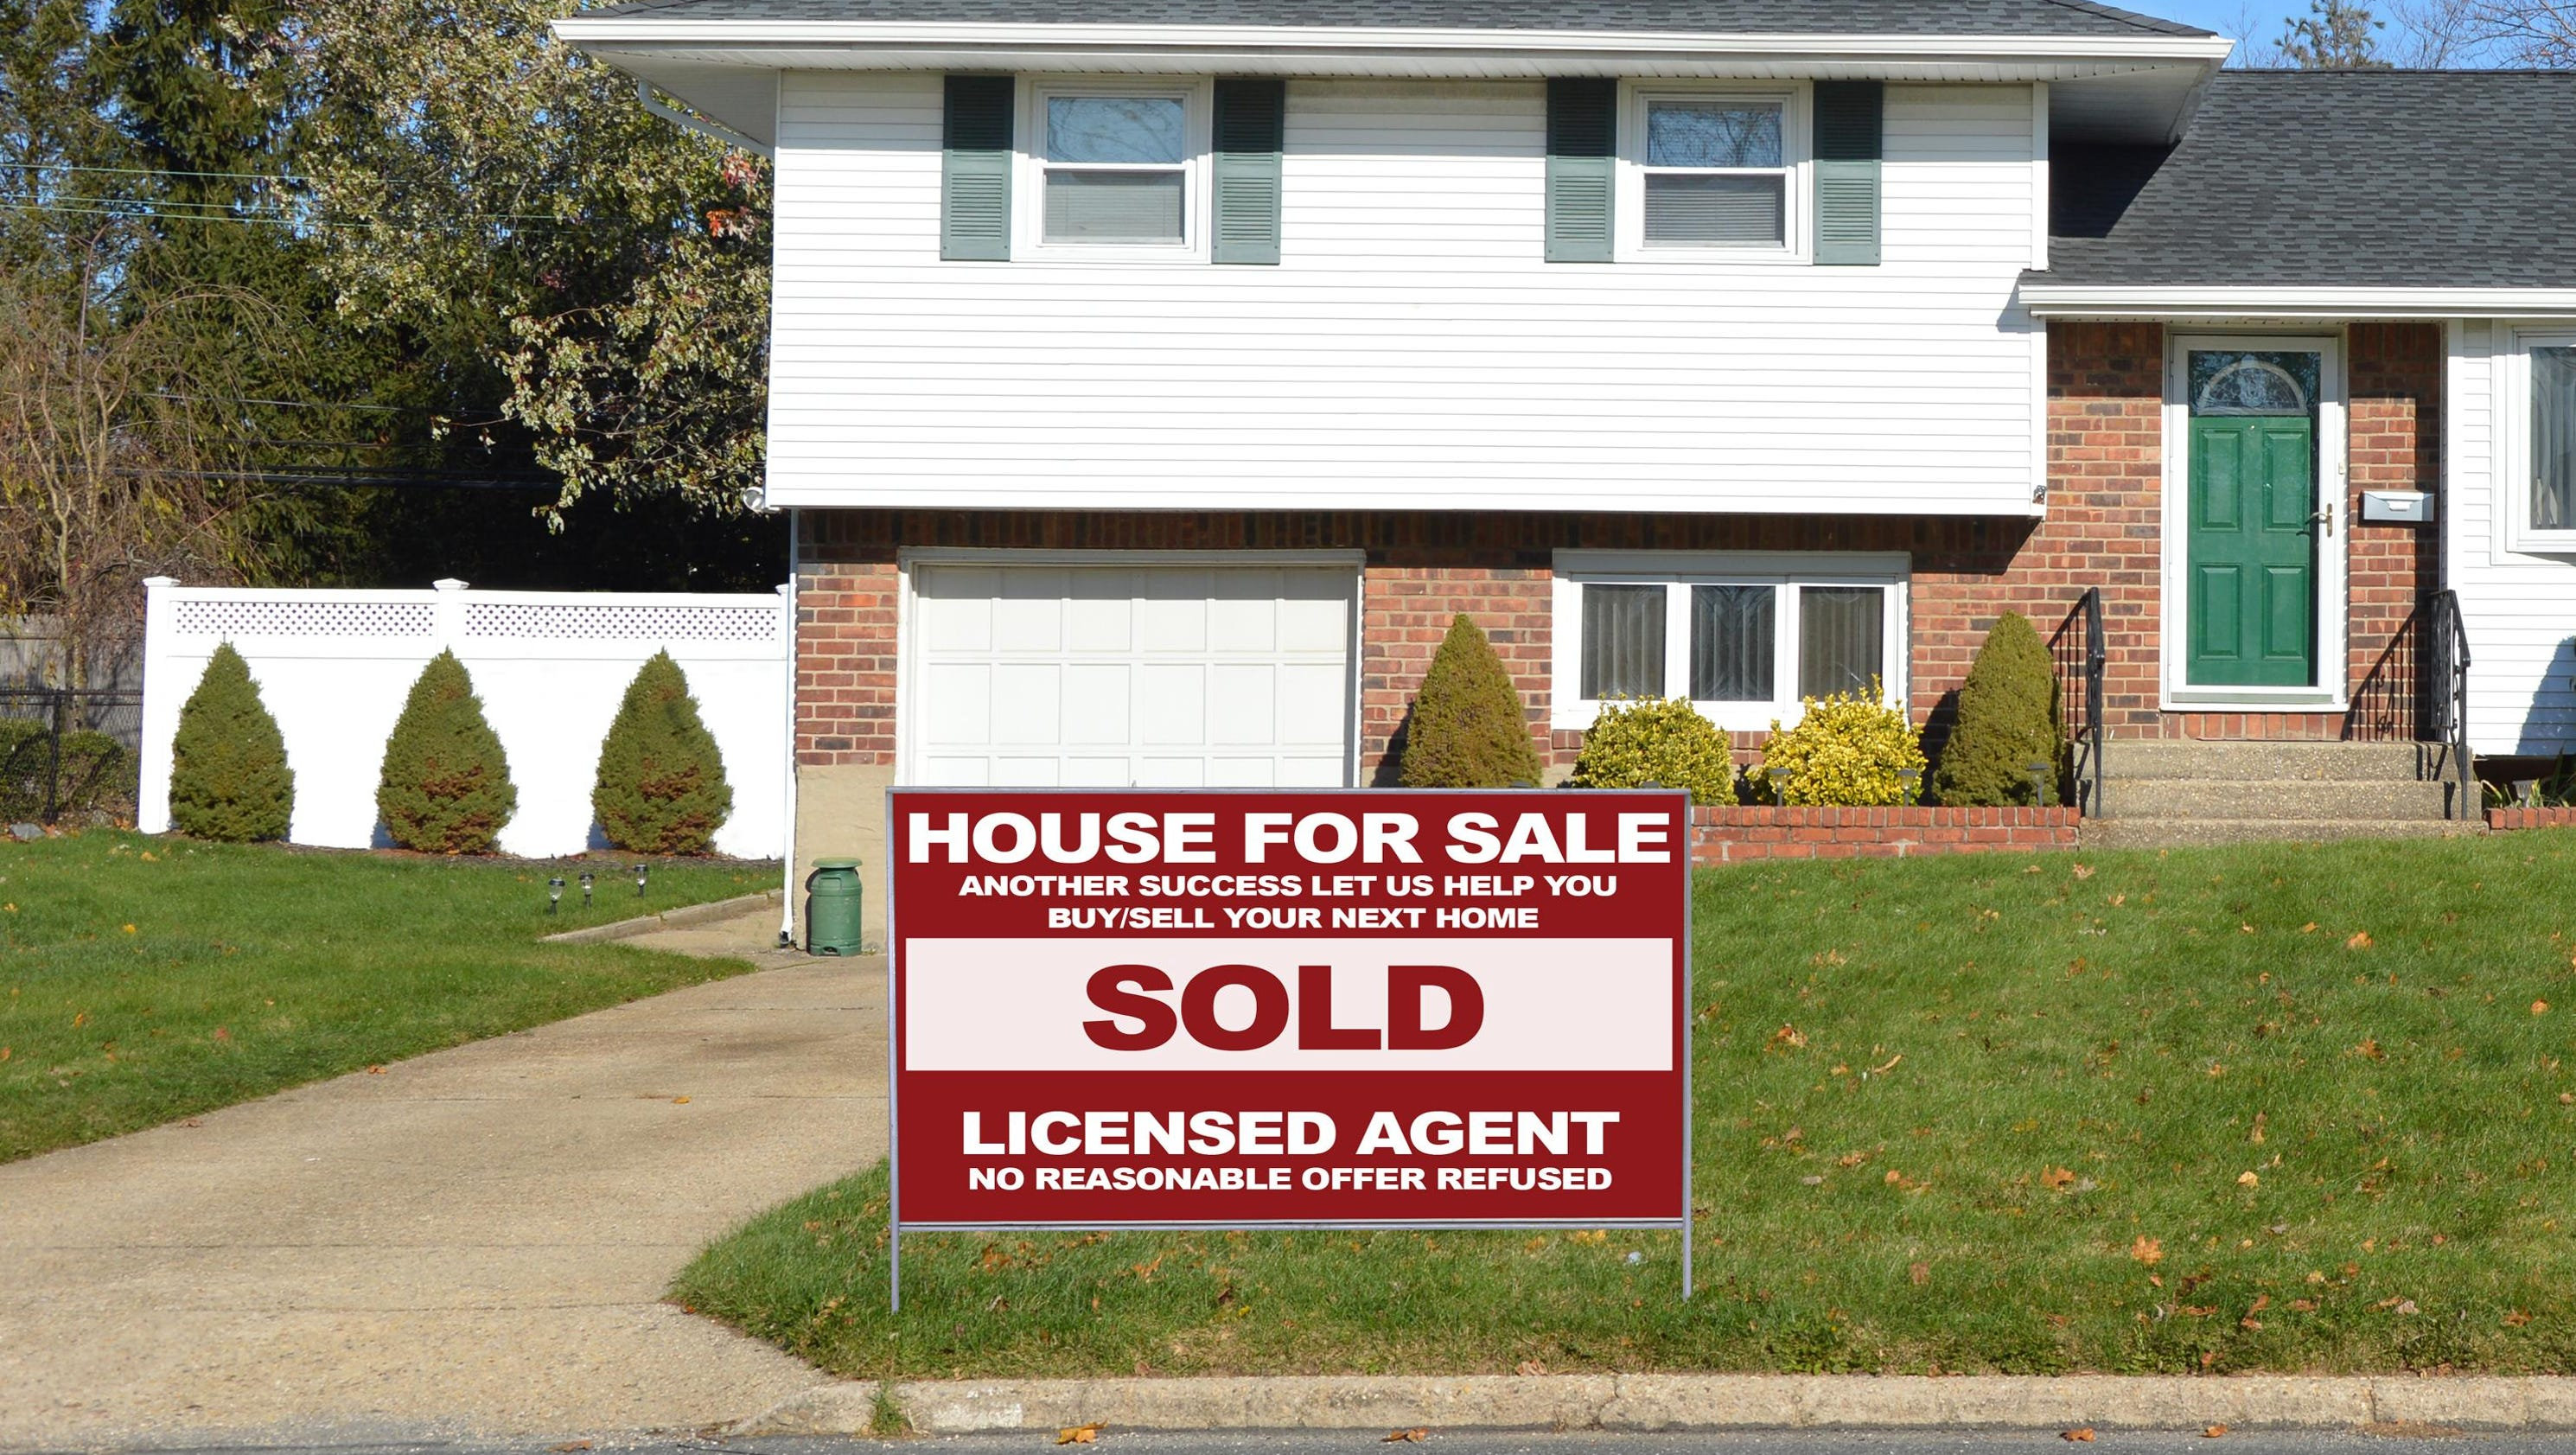 How much Chenango County property sales